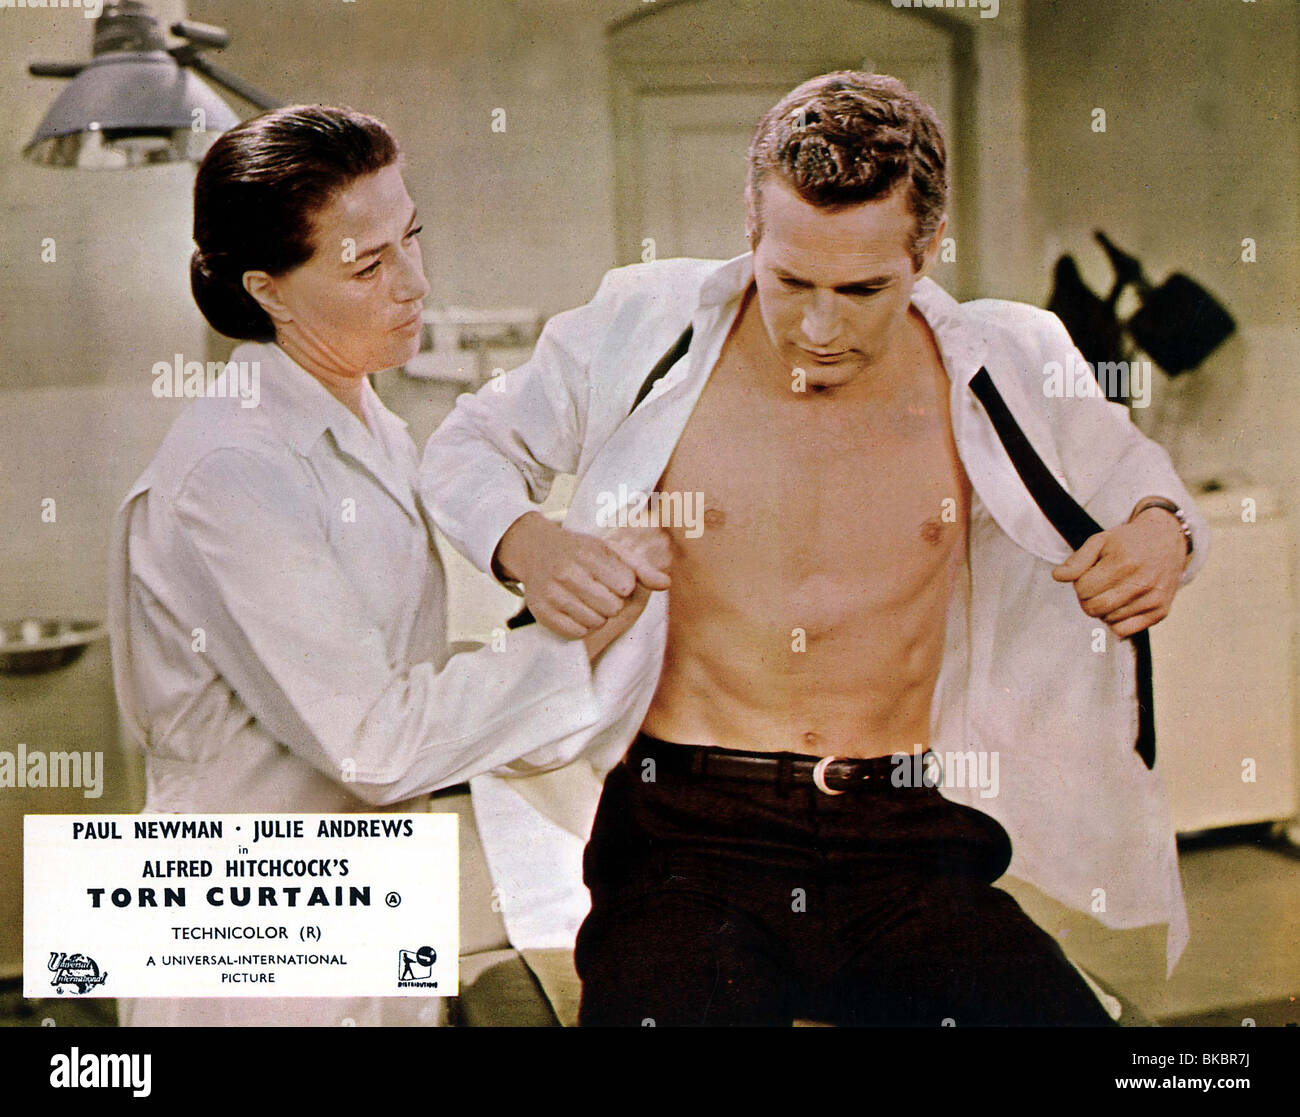 TORN CURTAIN (1966) PAUL NEWMAN TRCT 007FOH - Stock Image